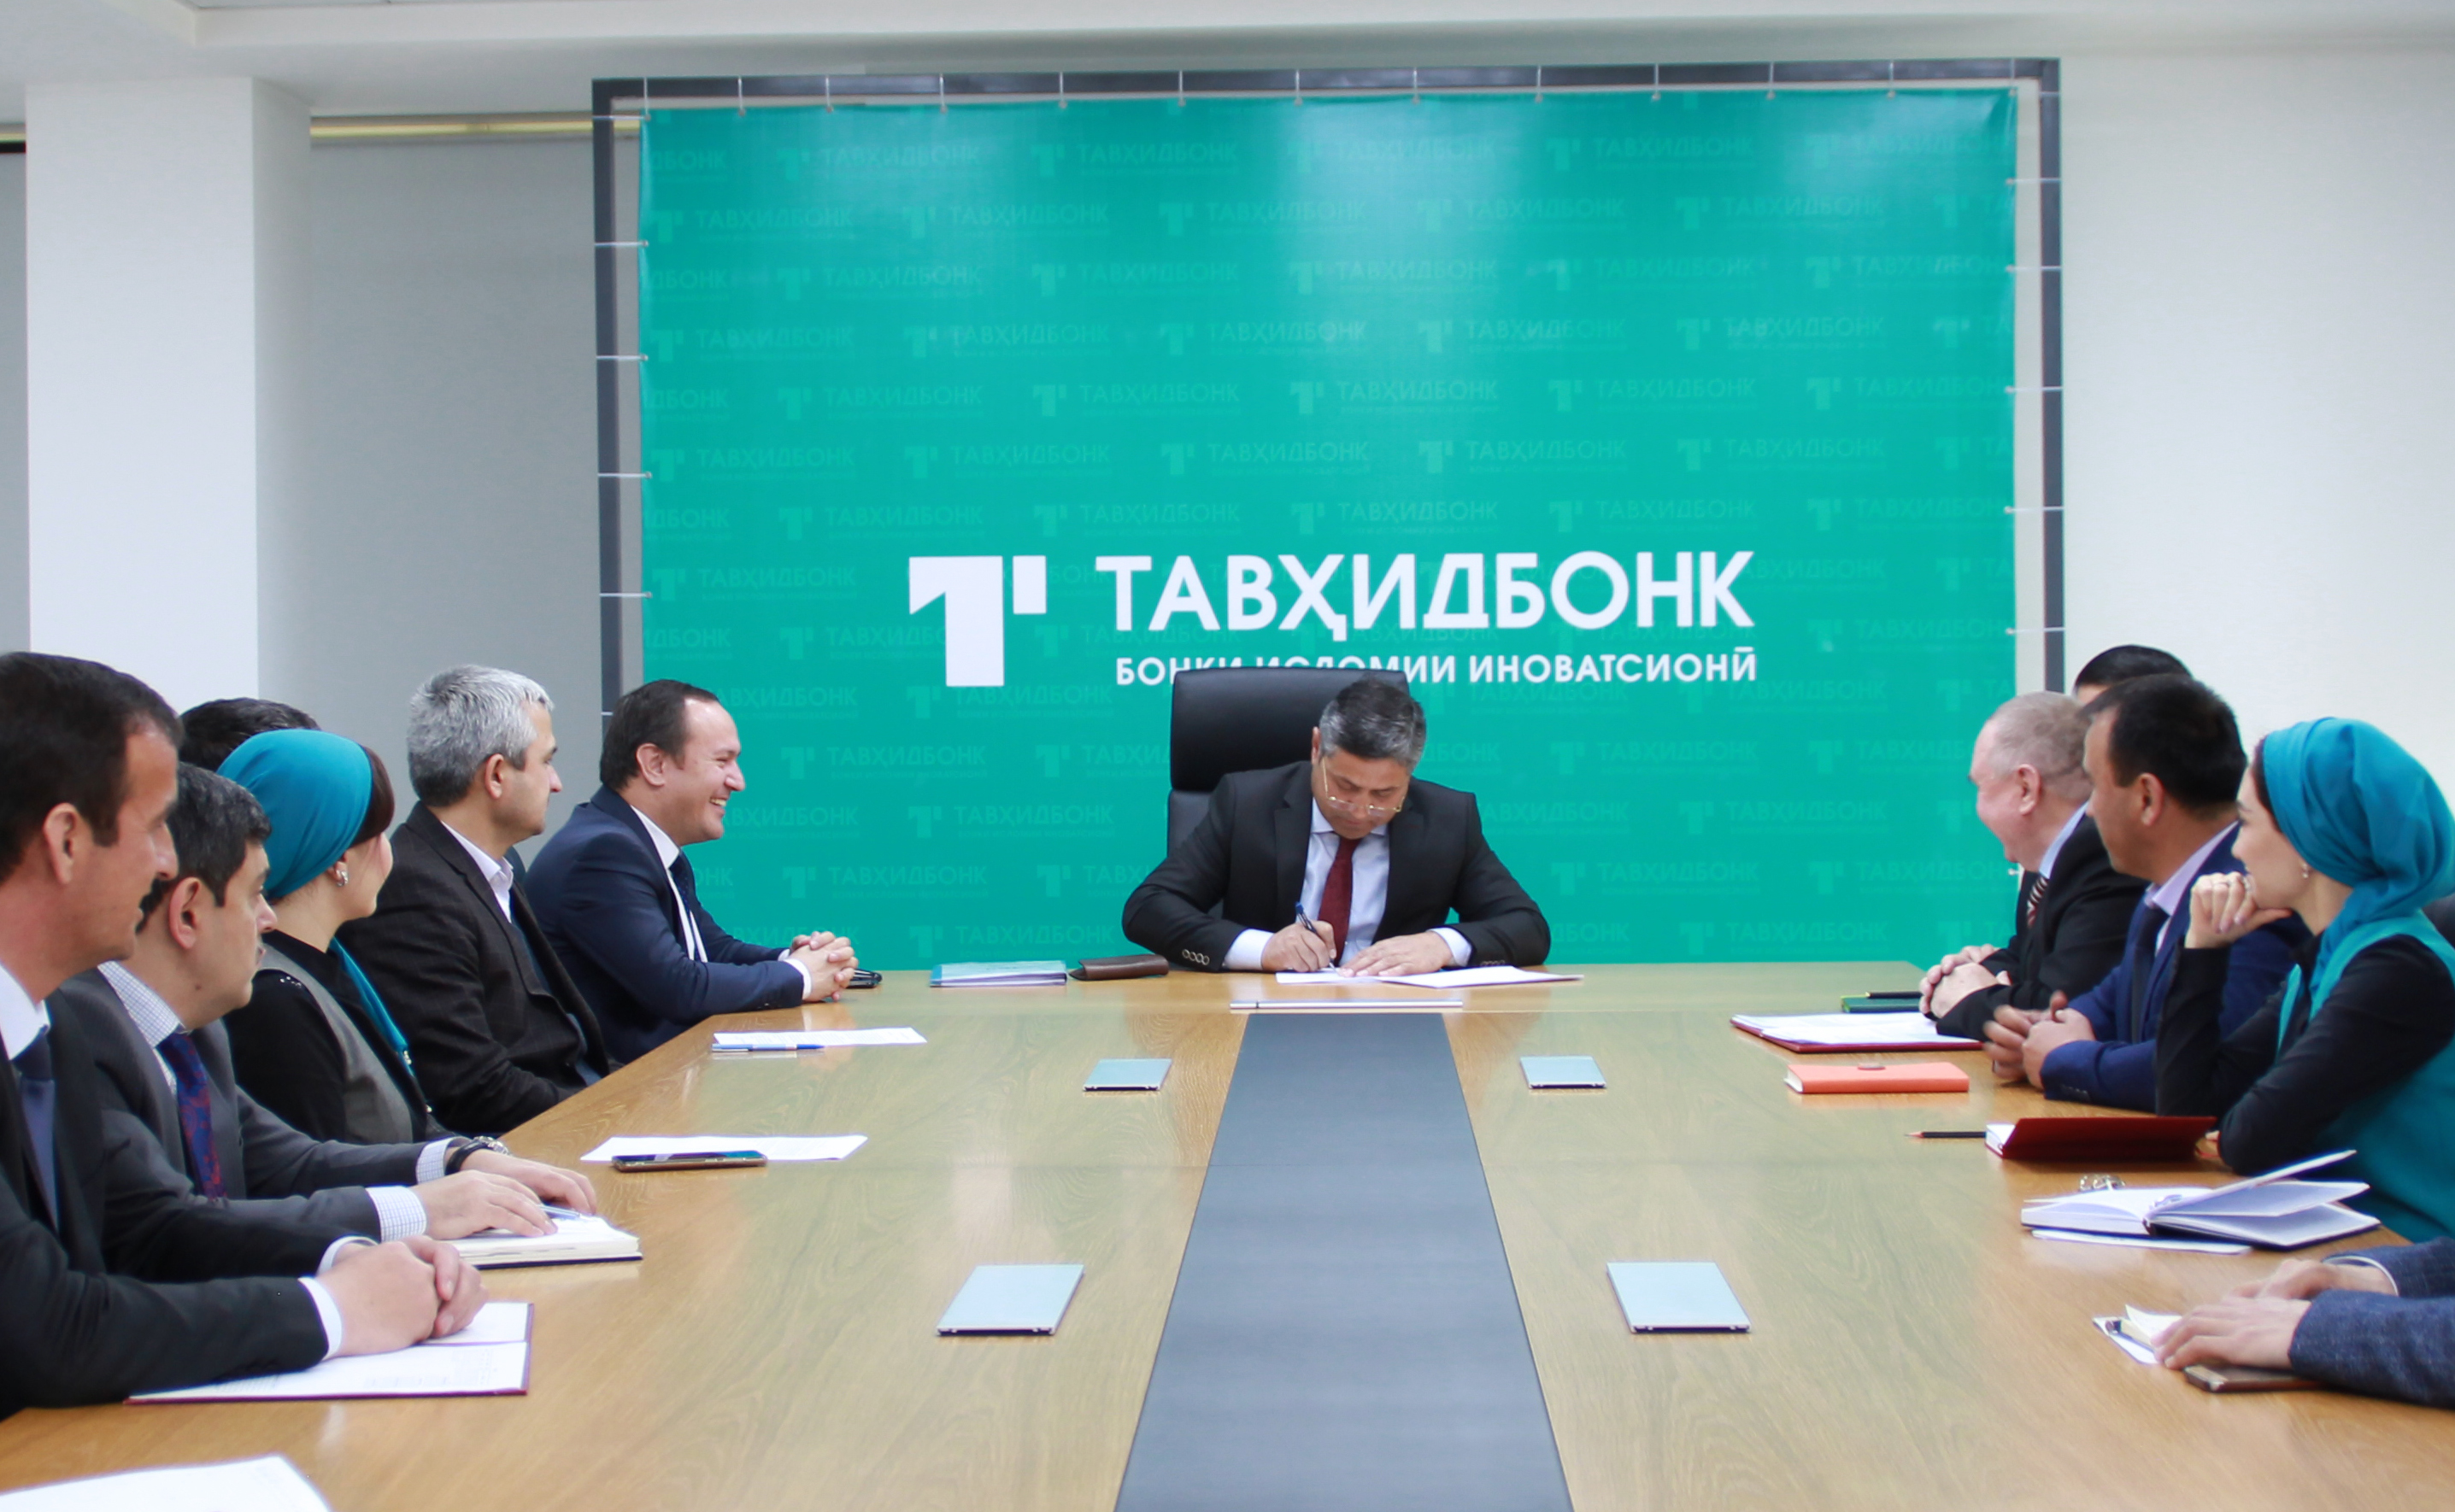 Has been signed  Memorandum of Understanding between Islamic Development Bank and Tawhidbank of the Republic of Tajikistan concerning Cooperation on Development of Economic Empowerment in the Republic of Tajikistan.